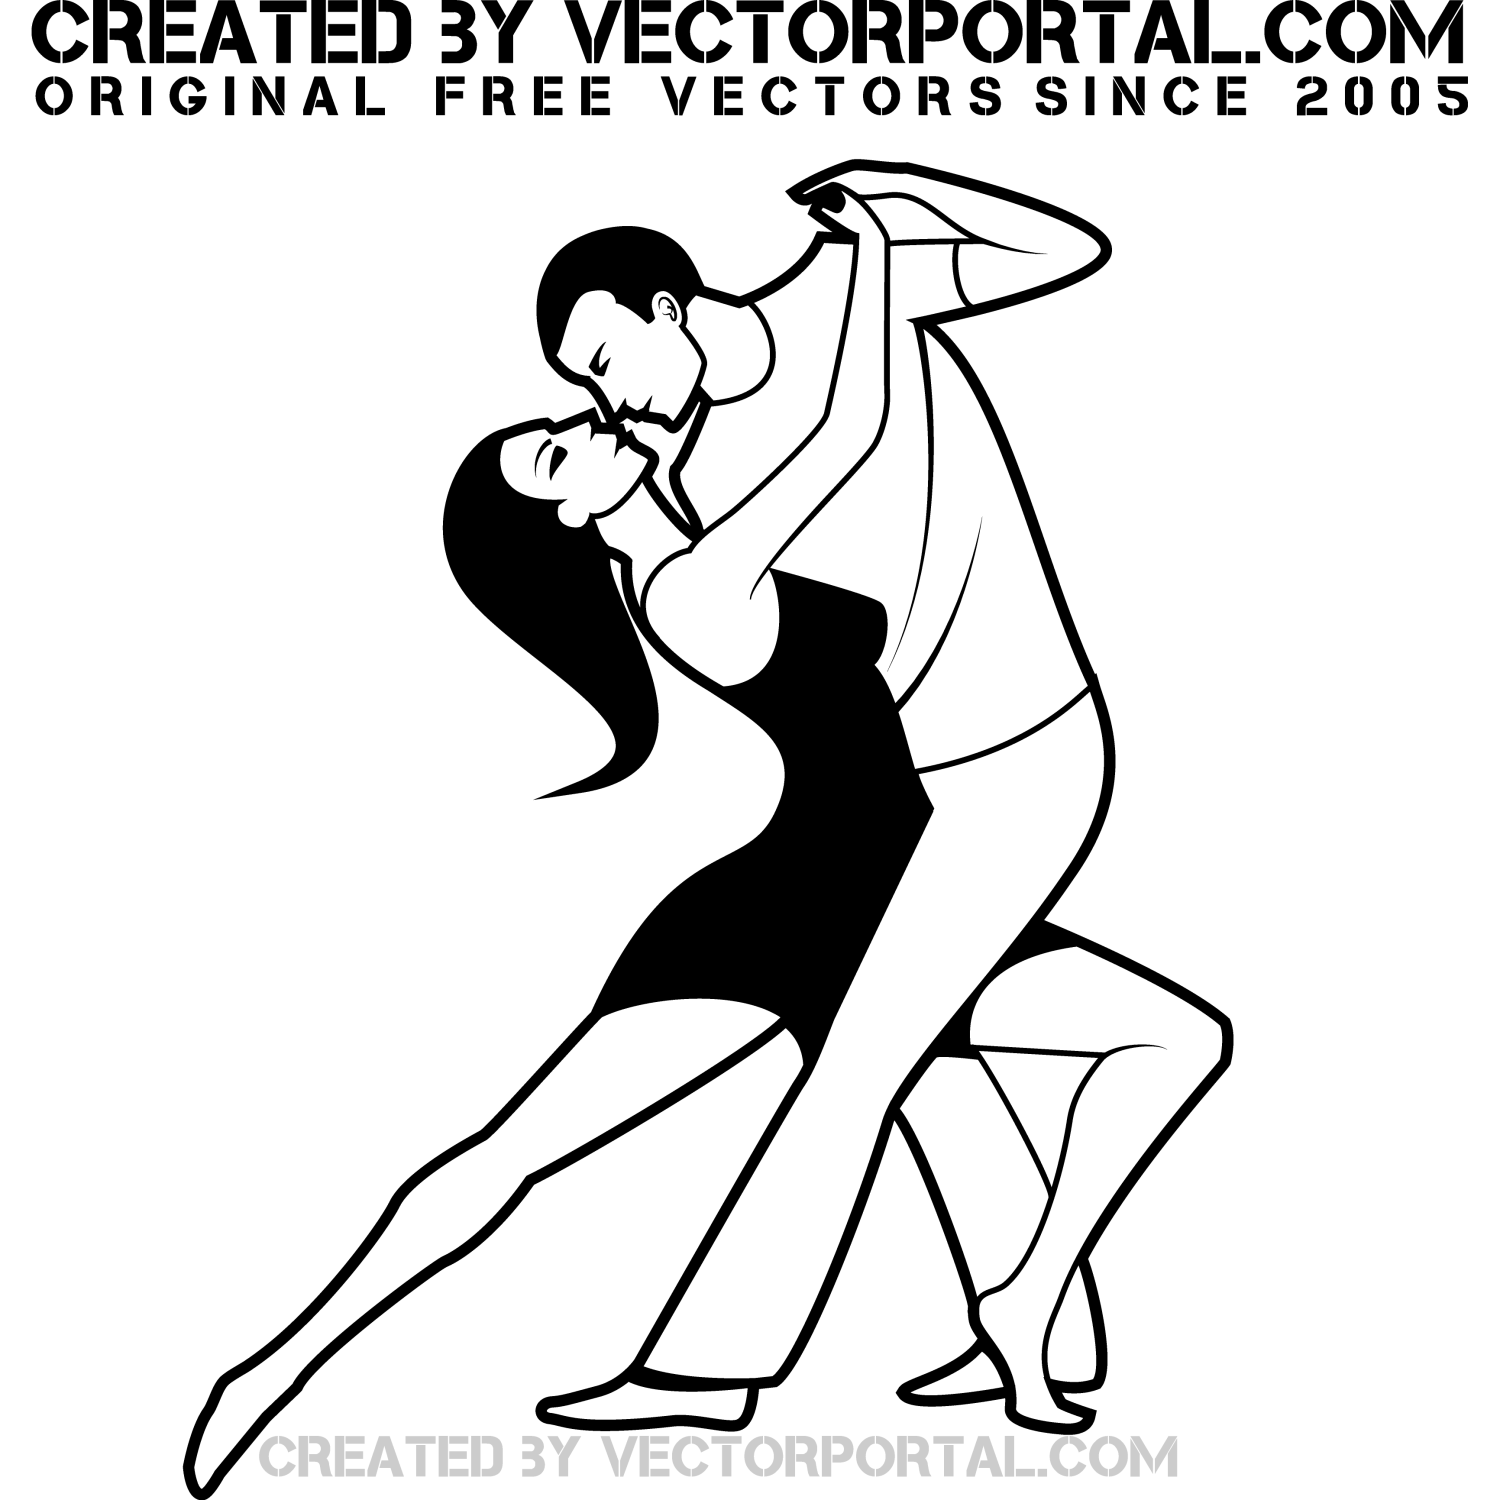 Black and white vector graphics of a man and woman dancing to the music